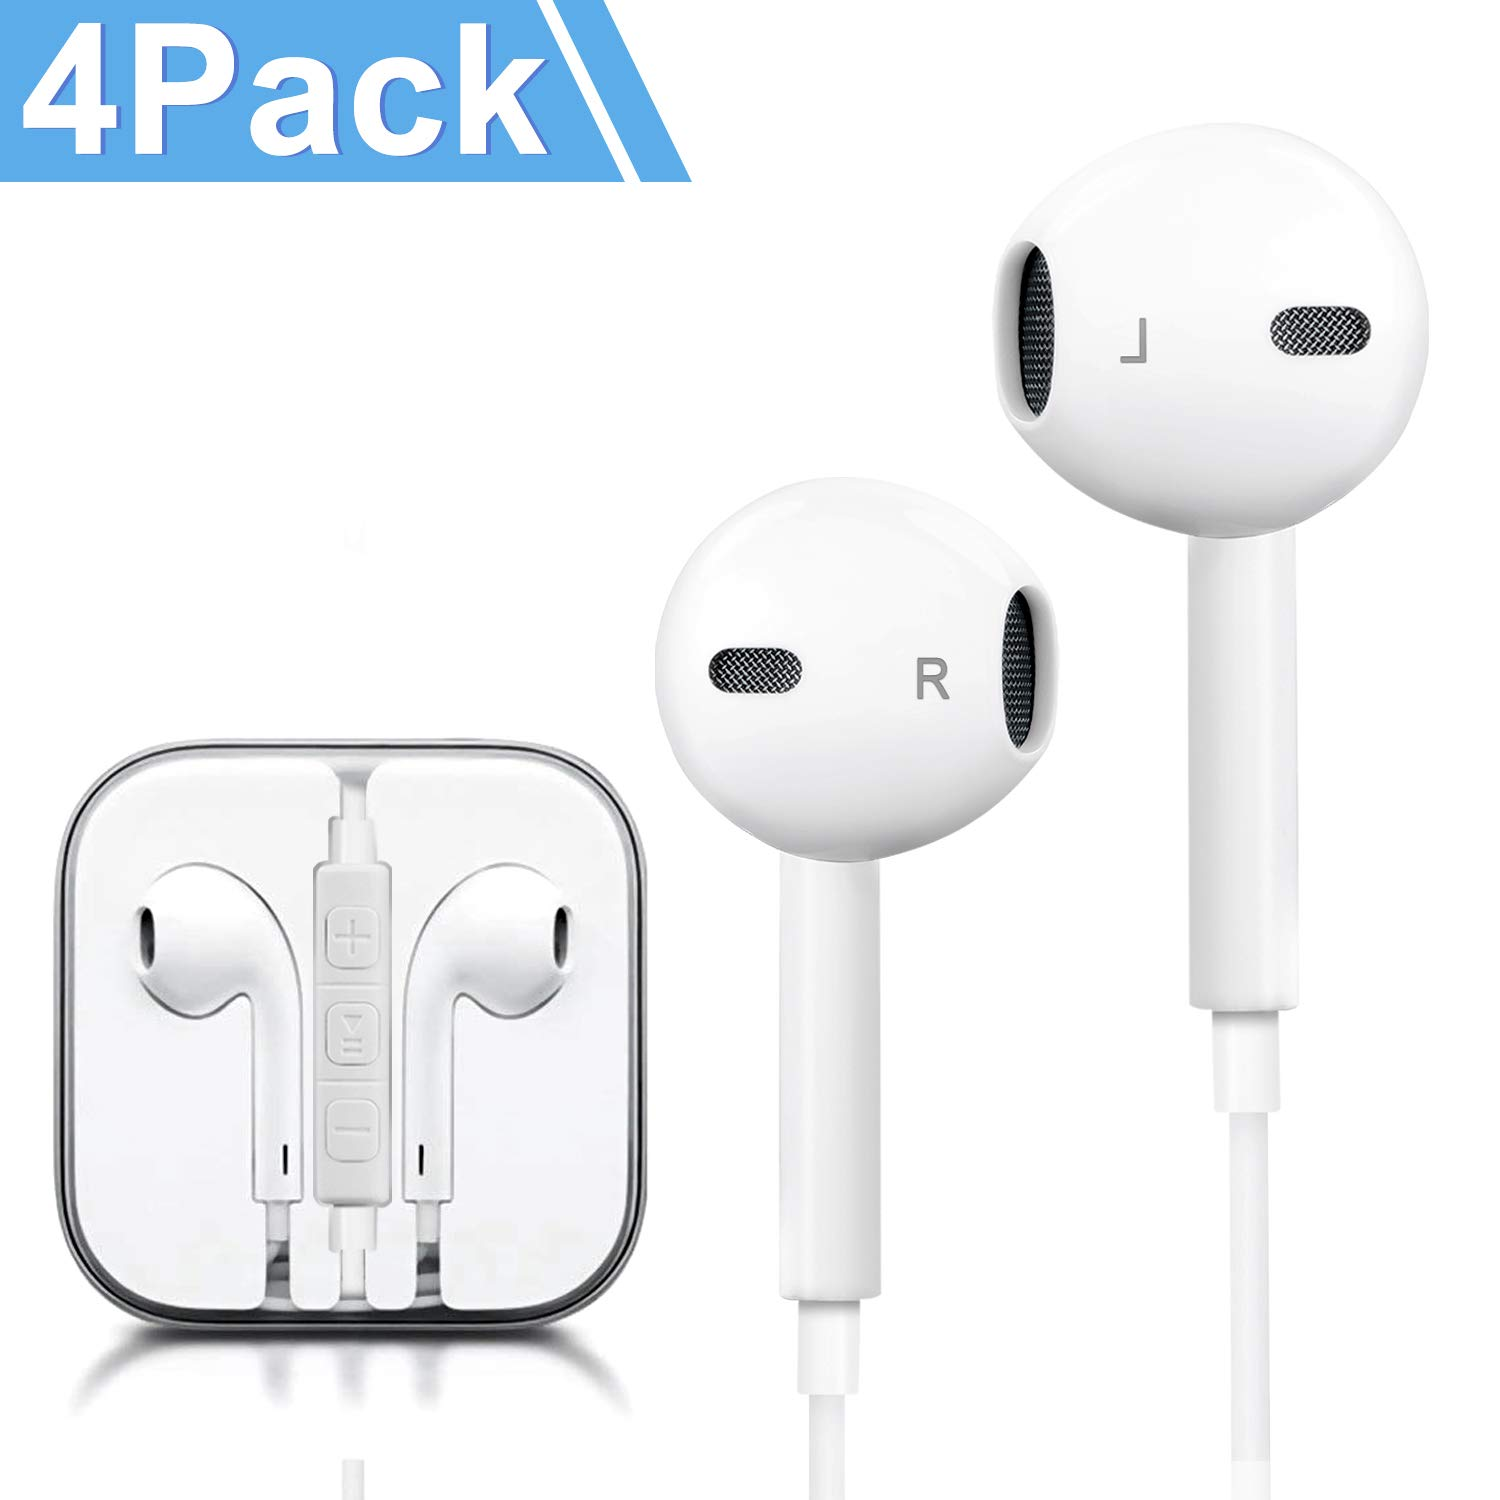 Headphones, 4Pack Quality Earbuds Earphones with Microphone and Volume Control, Compatible Phone 6s Plus/6s/6/SE/5s/5c/5 Galaxy and More Android Smartphones 3.5mm Headphones White by Bluedor